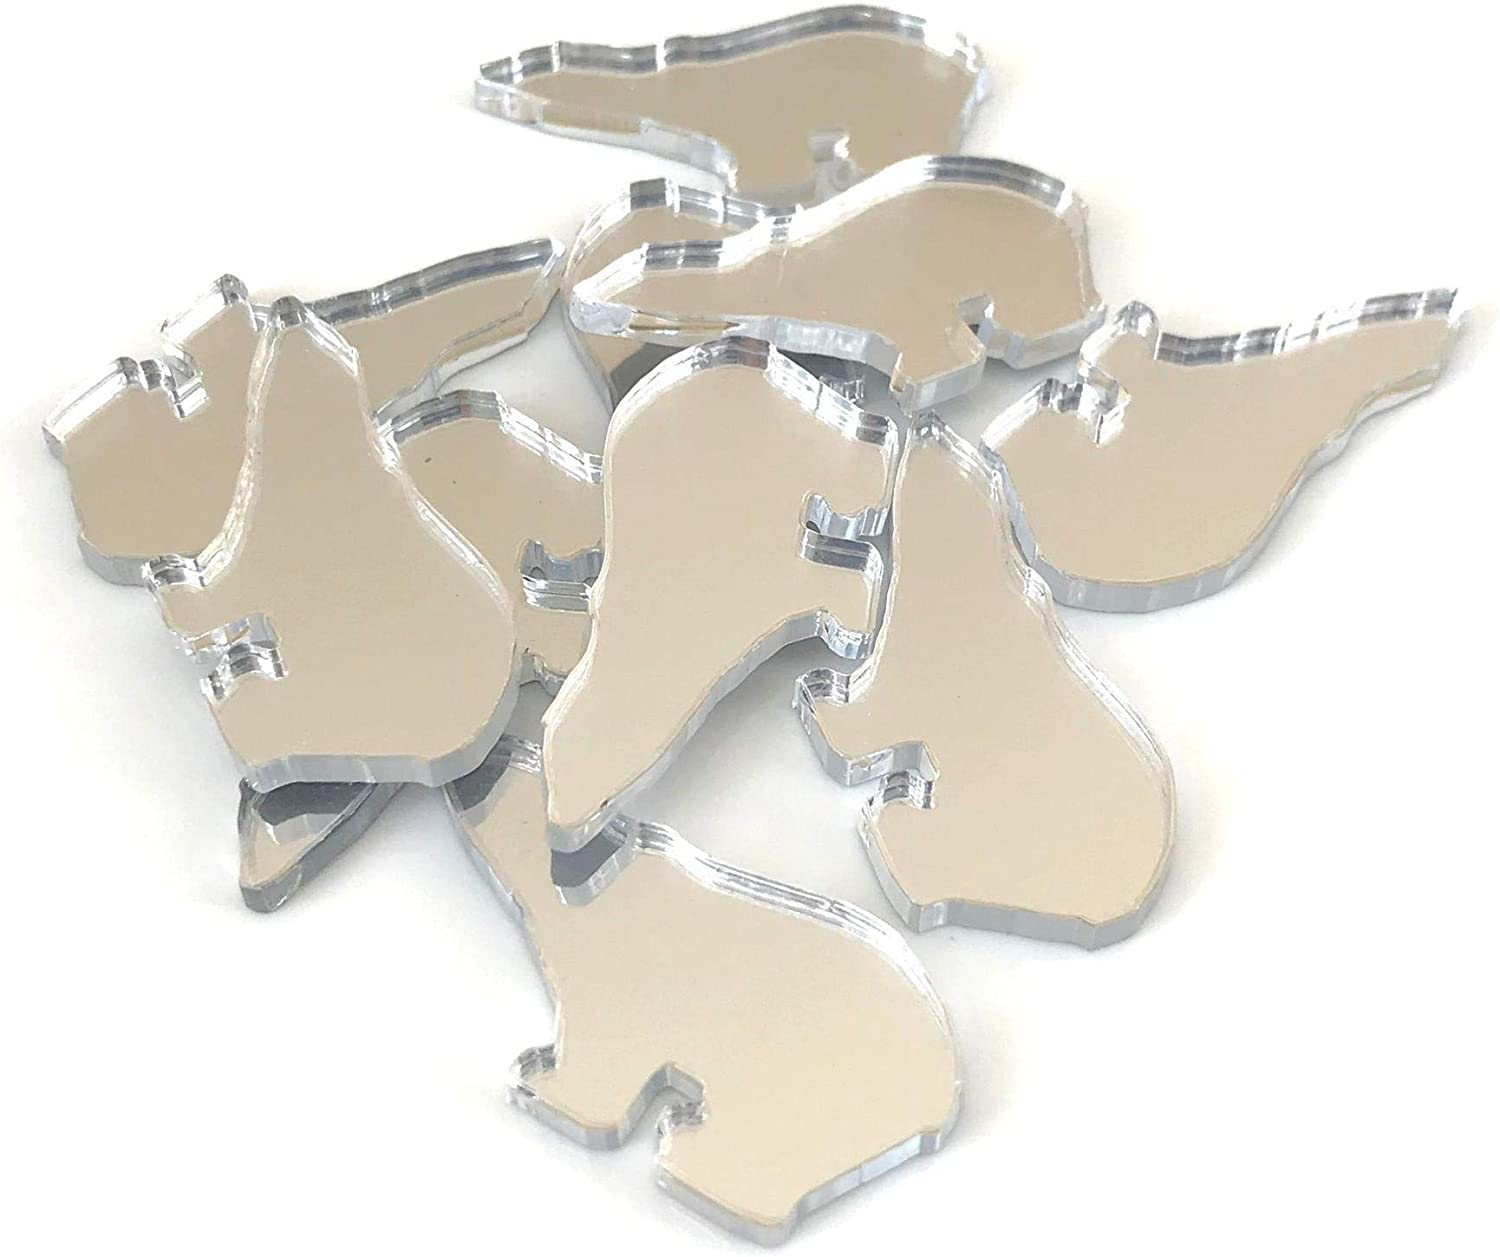 Super Cool Creations Polar Bear Mirrors Crafting Set Shaped Gorgeous Fashionable of